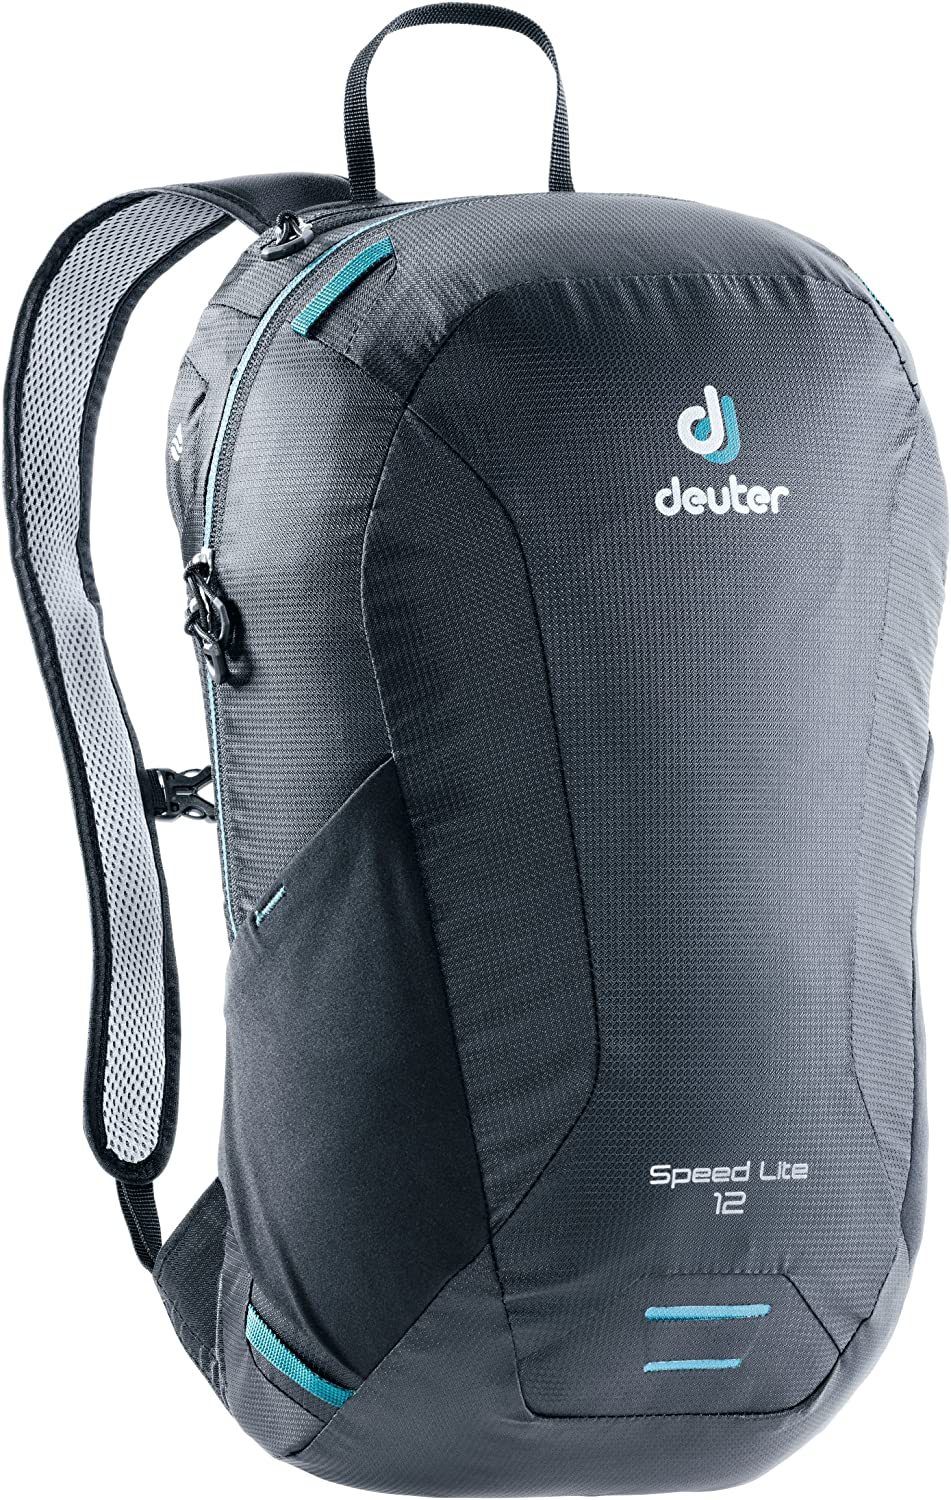 Deuter Unisex Speed Lite 12